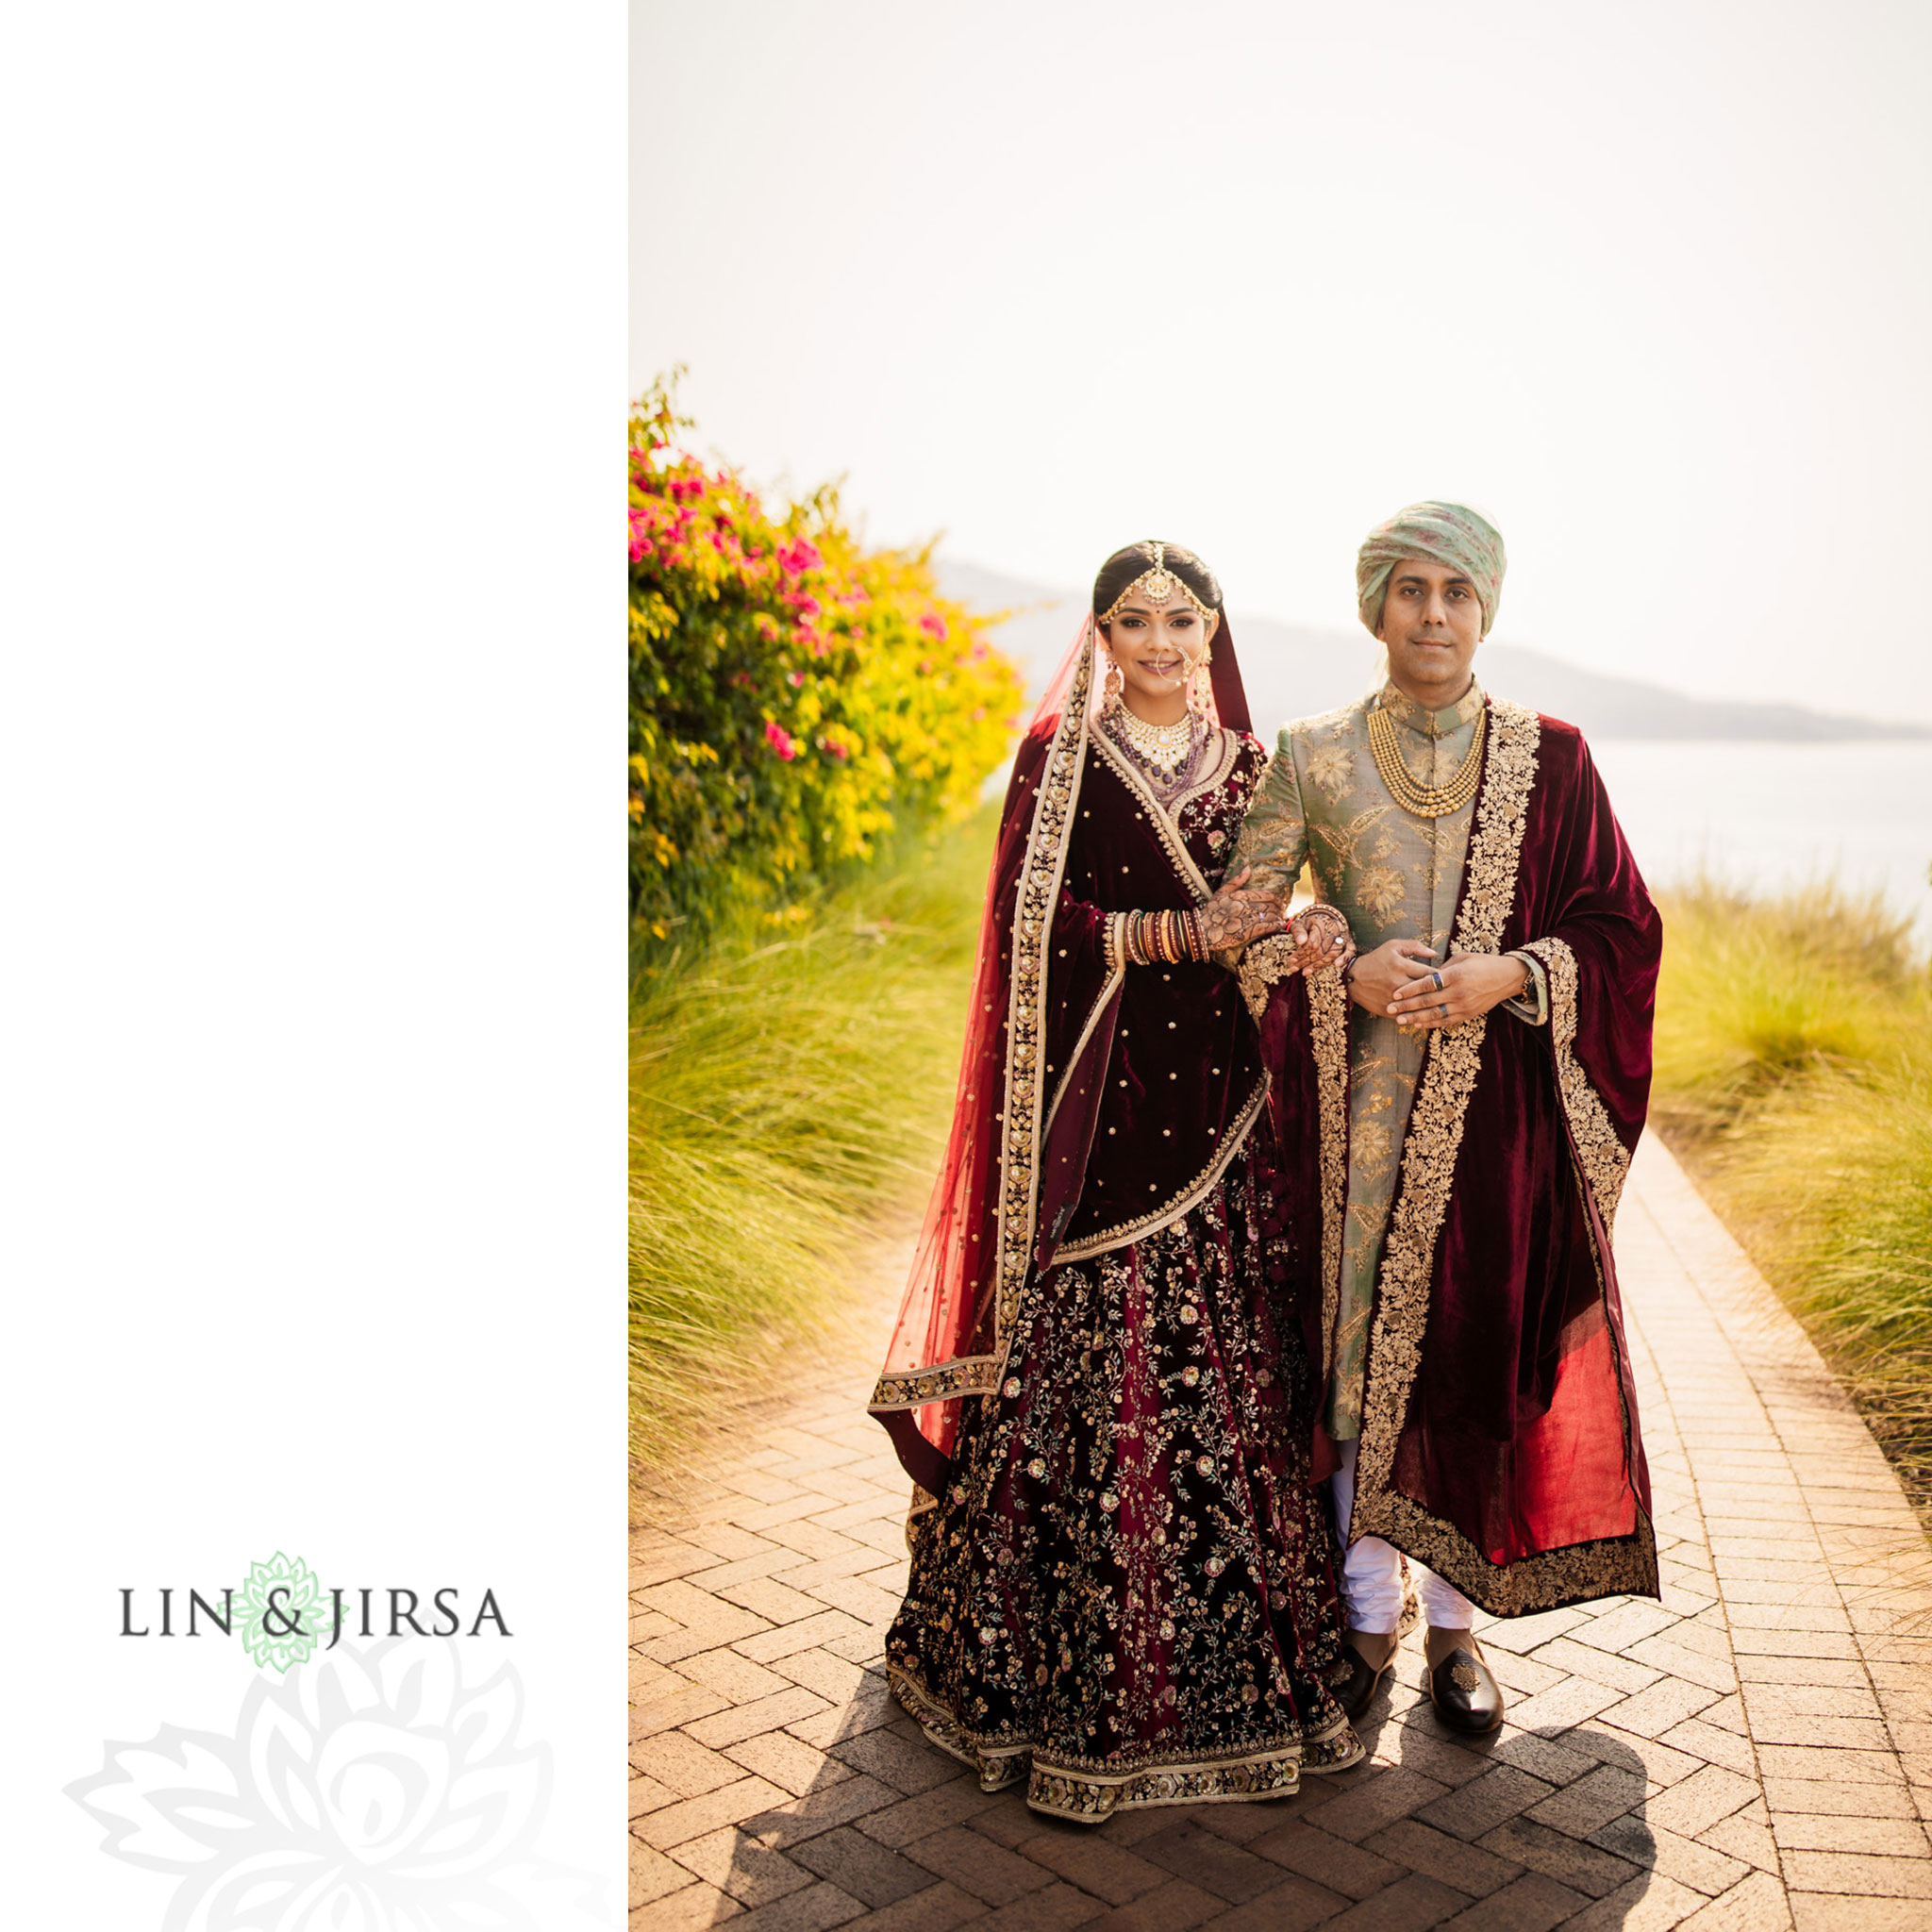 021 terranea resort indian wedding sabyasachi photography